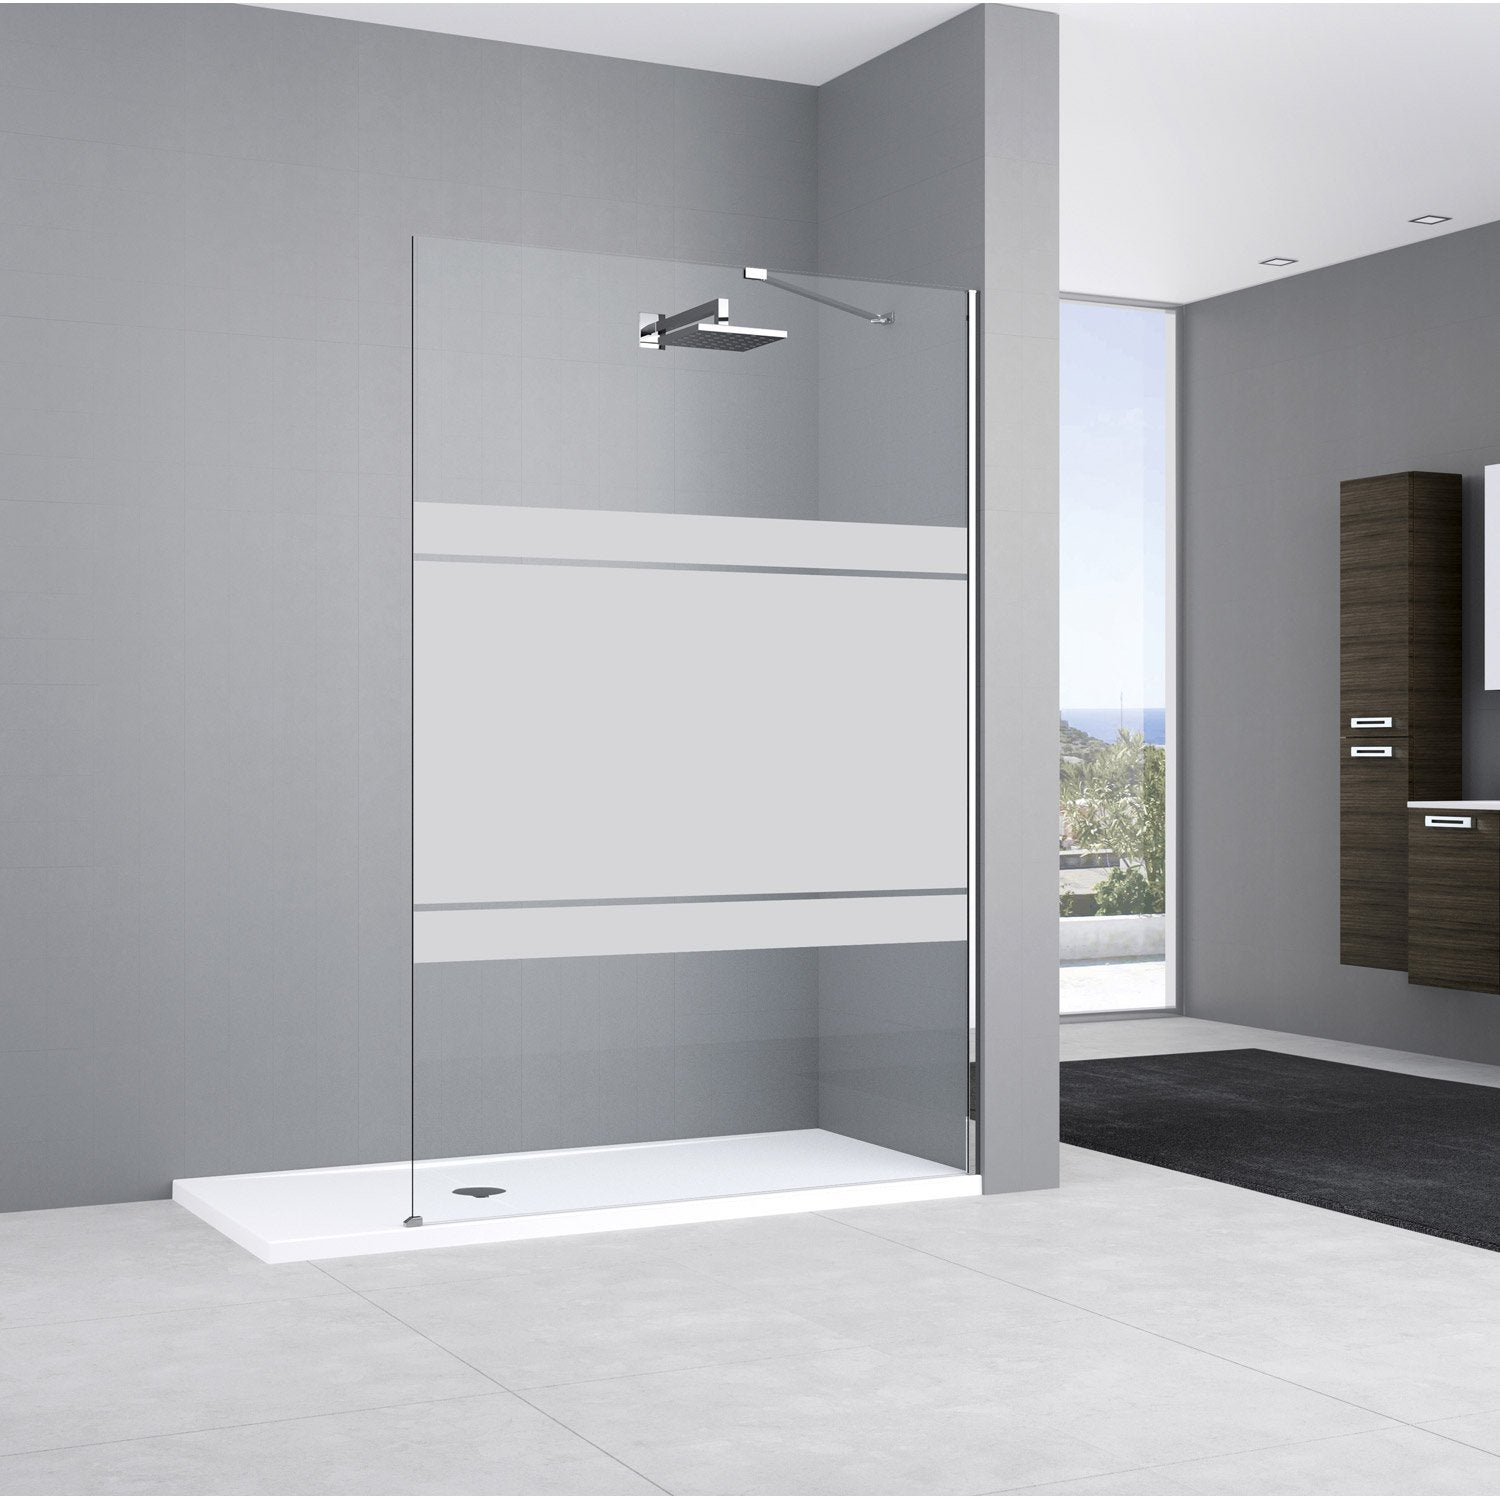 castorama paroi douche italienne beautiful colonne de douche castorama silver pour la salle de. Black Bedroom Furniture Sets. Home Design Ideas